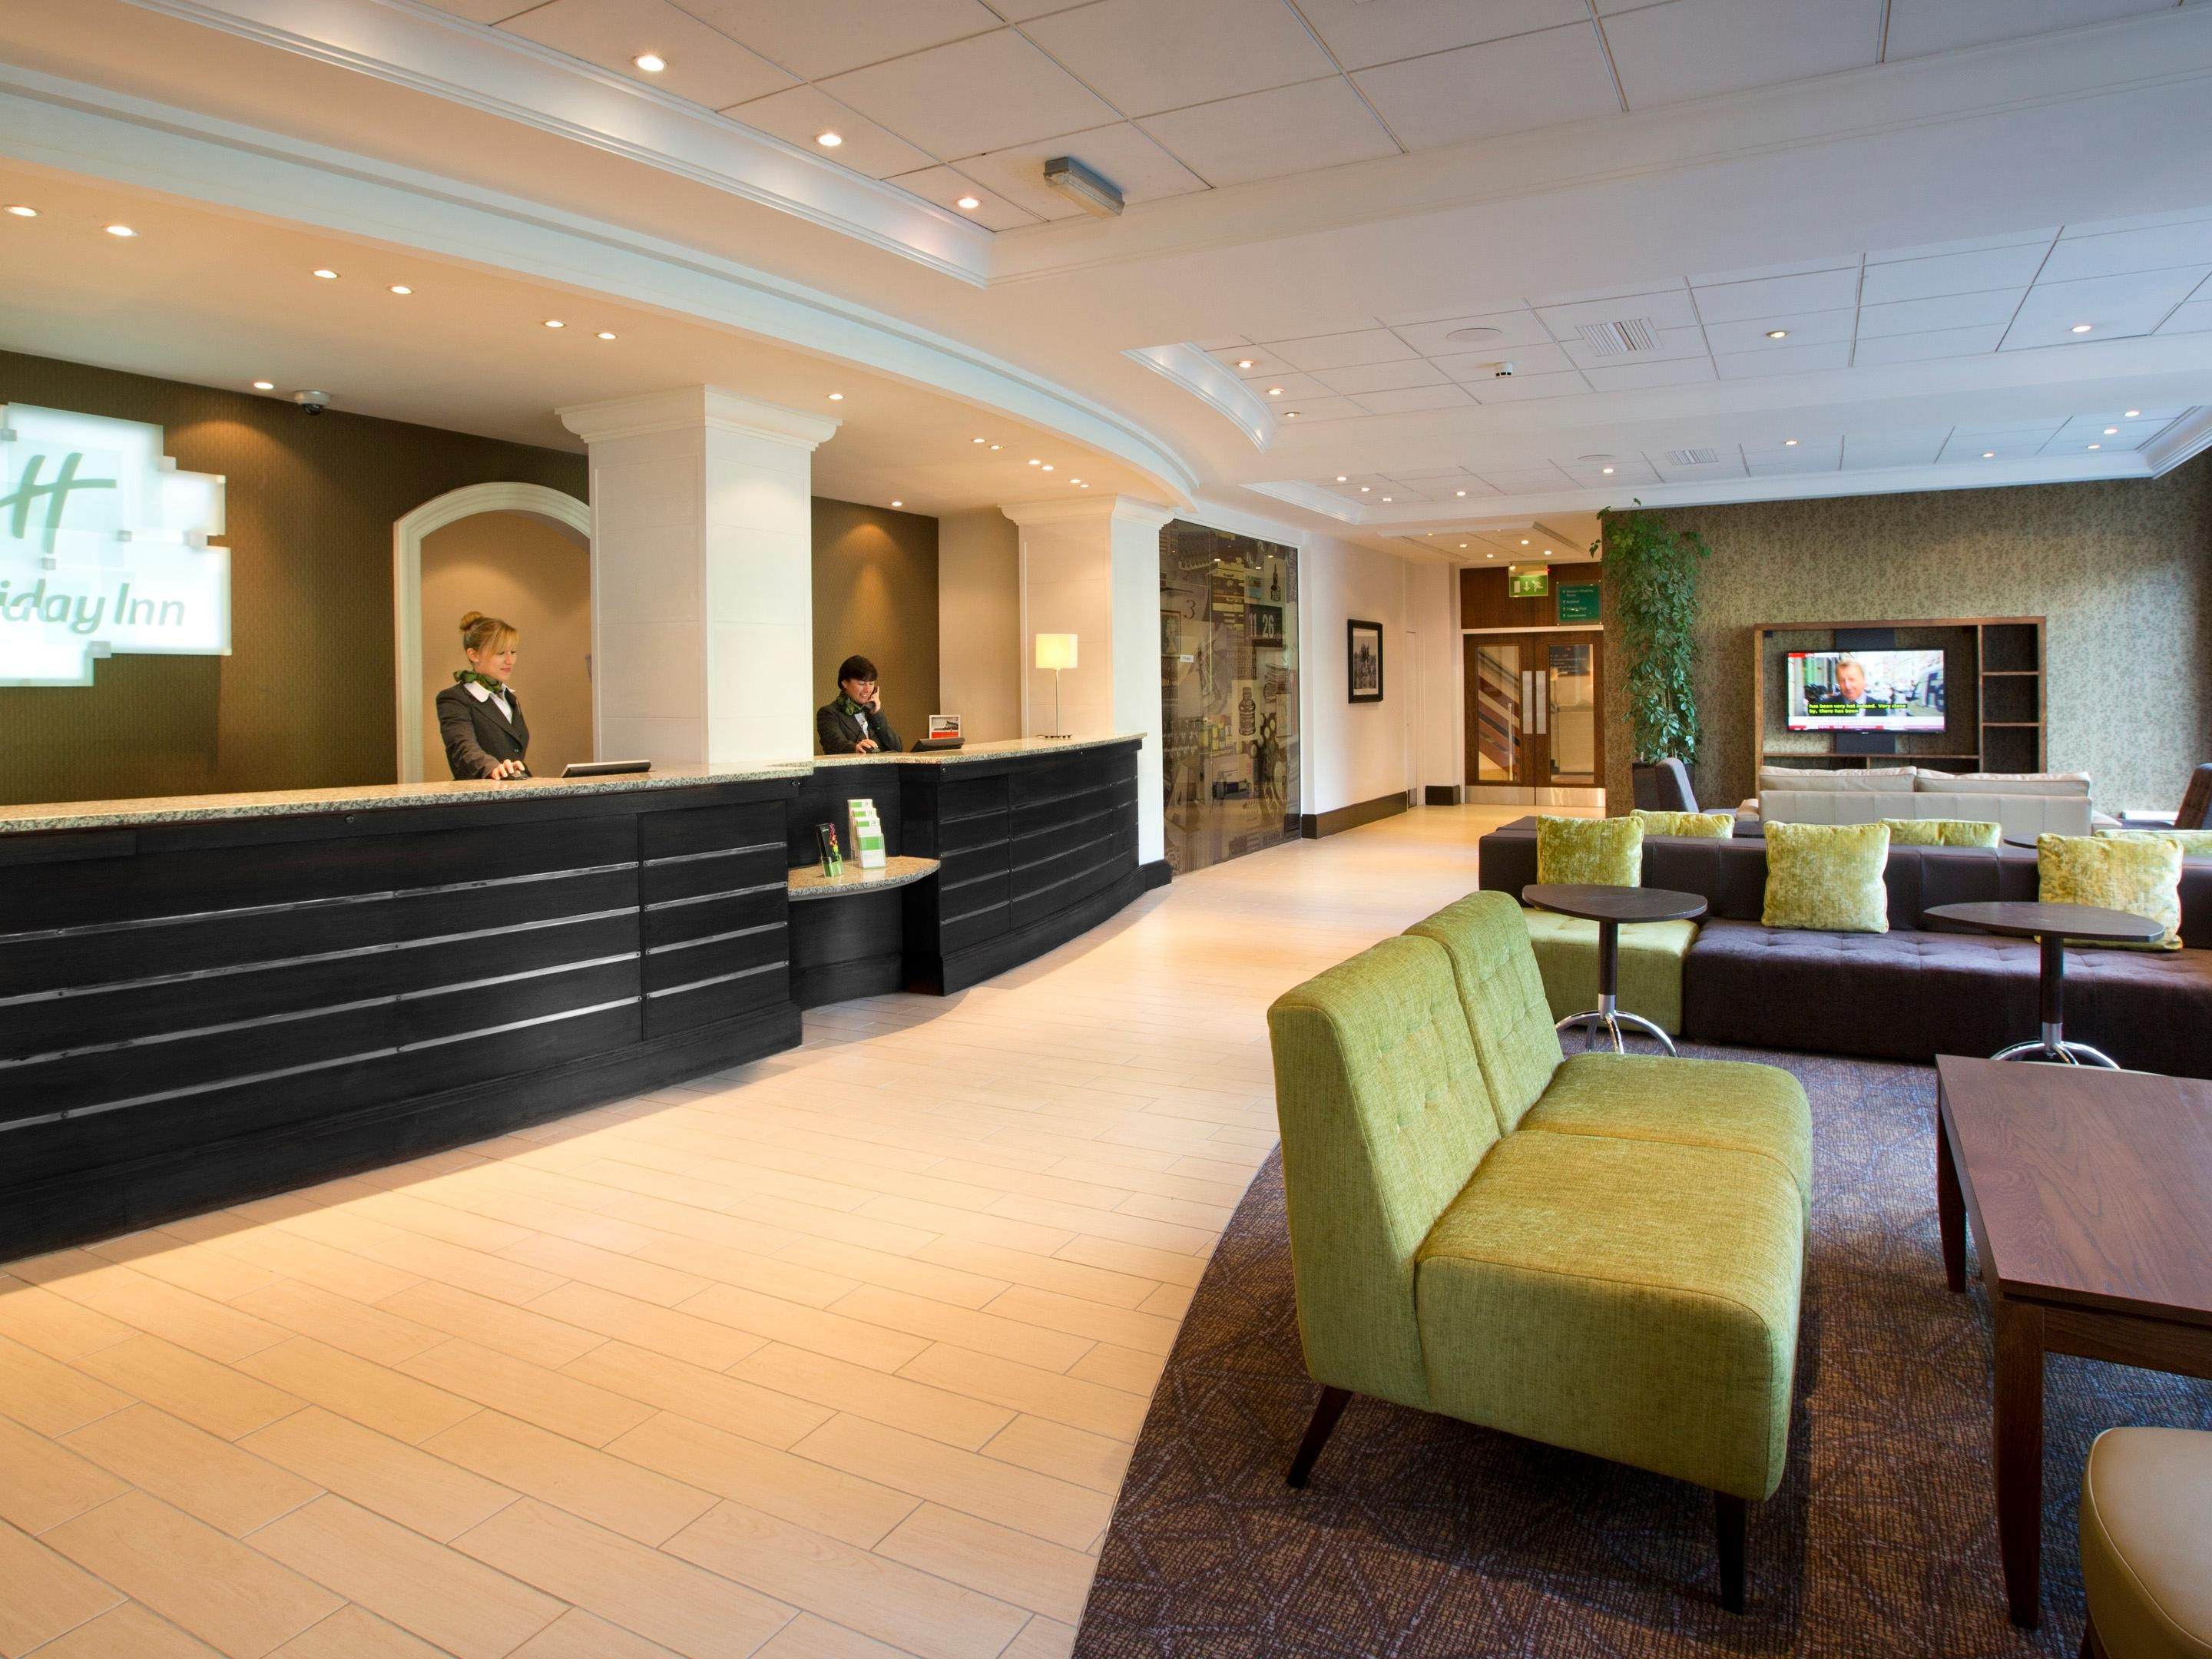 Reception at the Holiday Inn Peterborough West